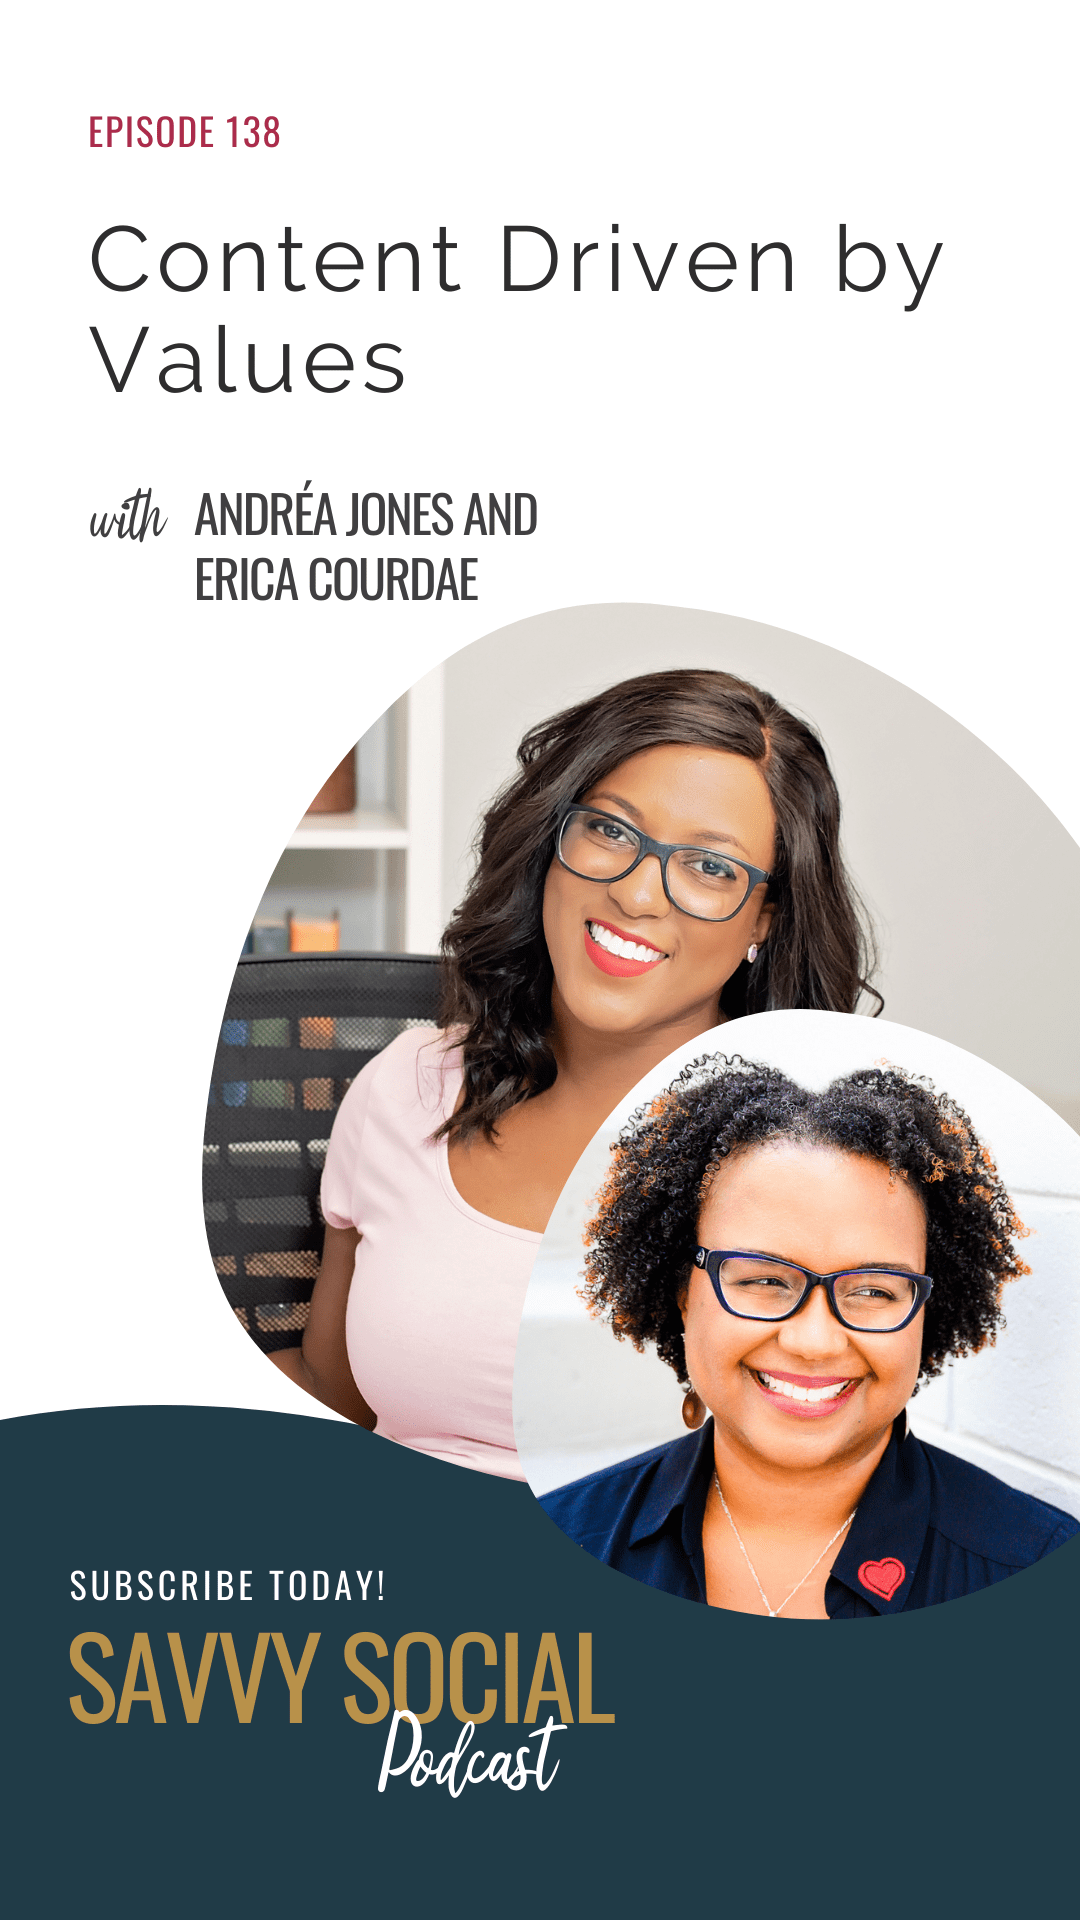 Content Driven by Values with Erica Courdae